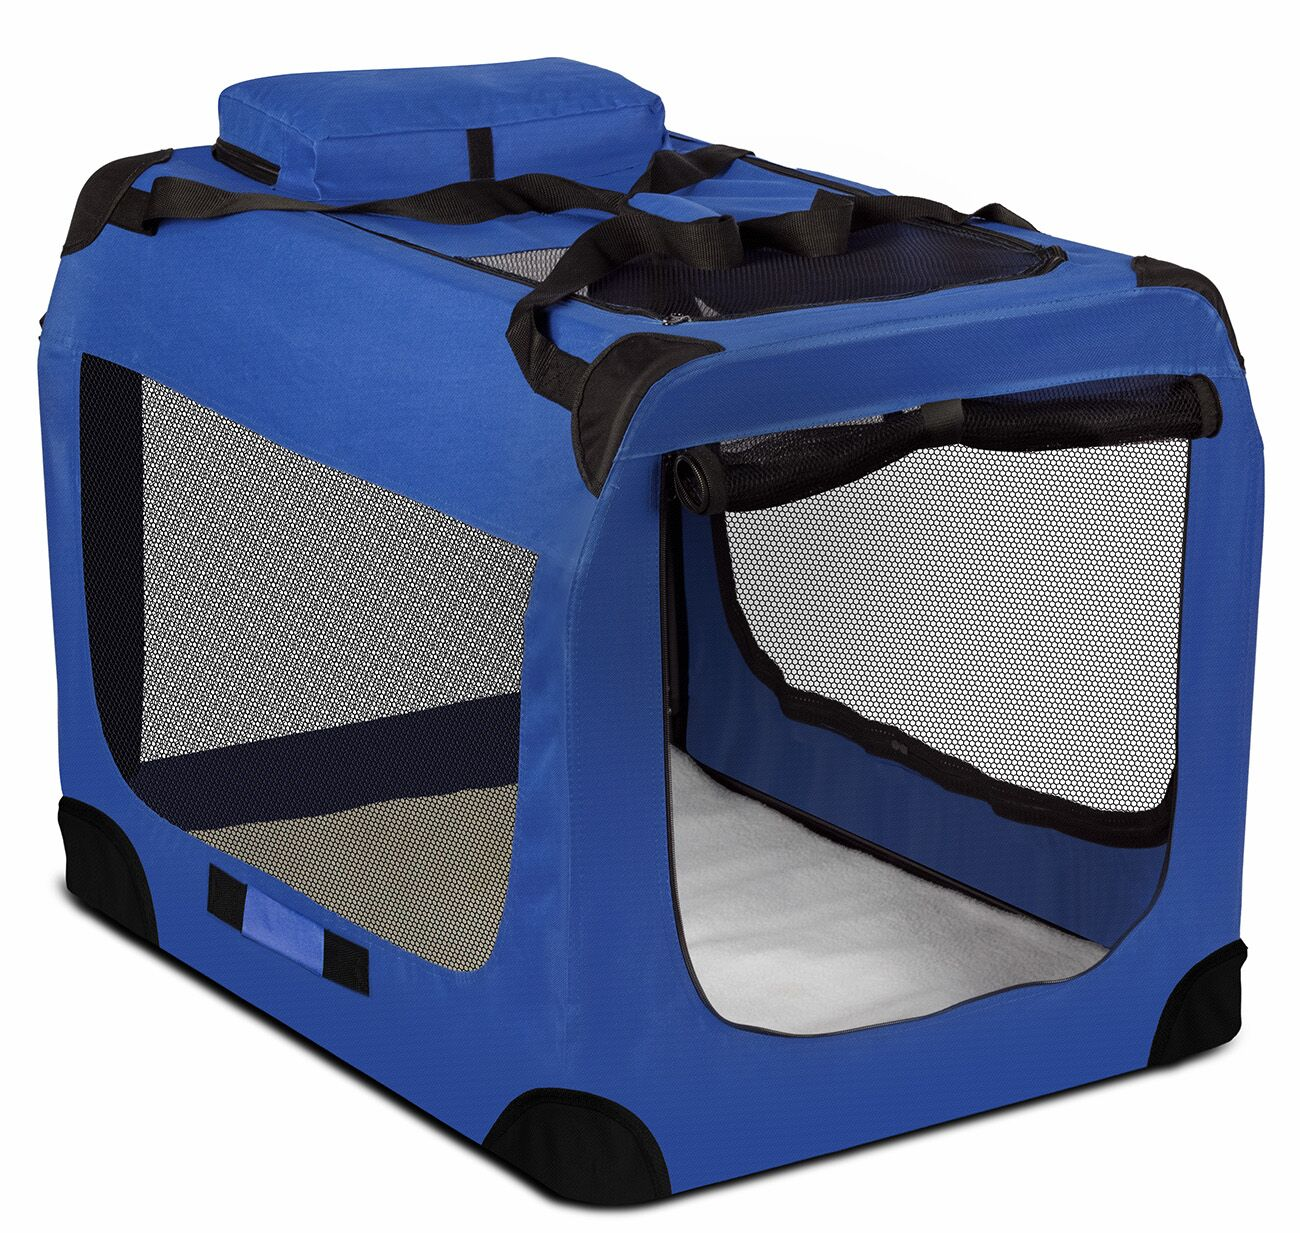 Soft-Sided Pet Carrier Size: 31.5